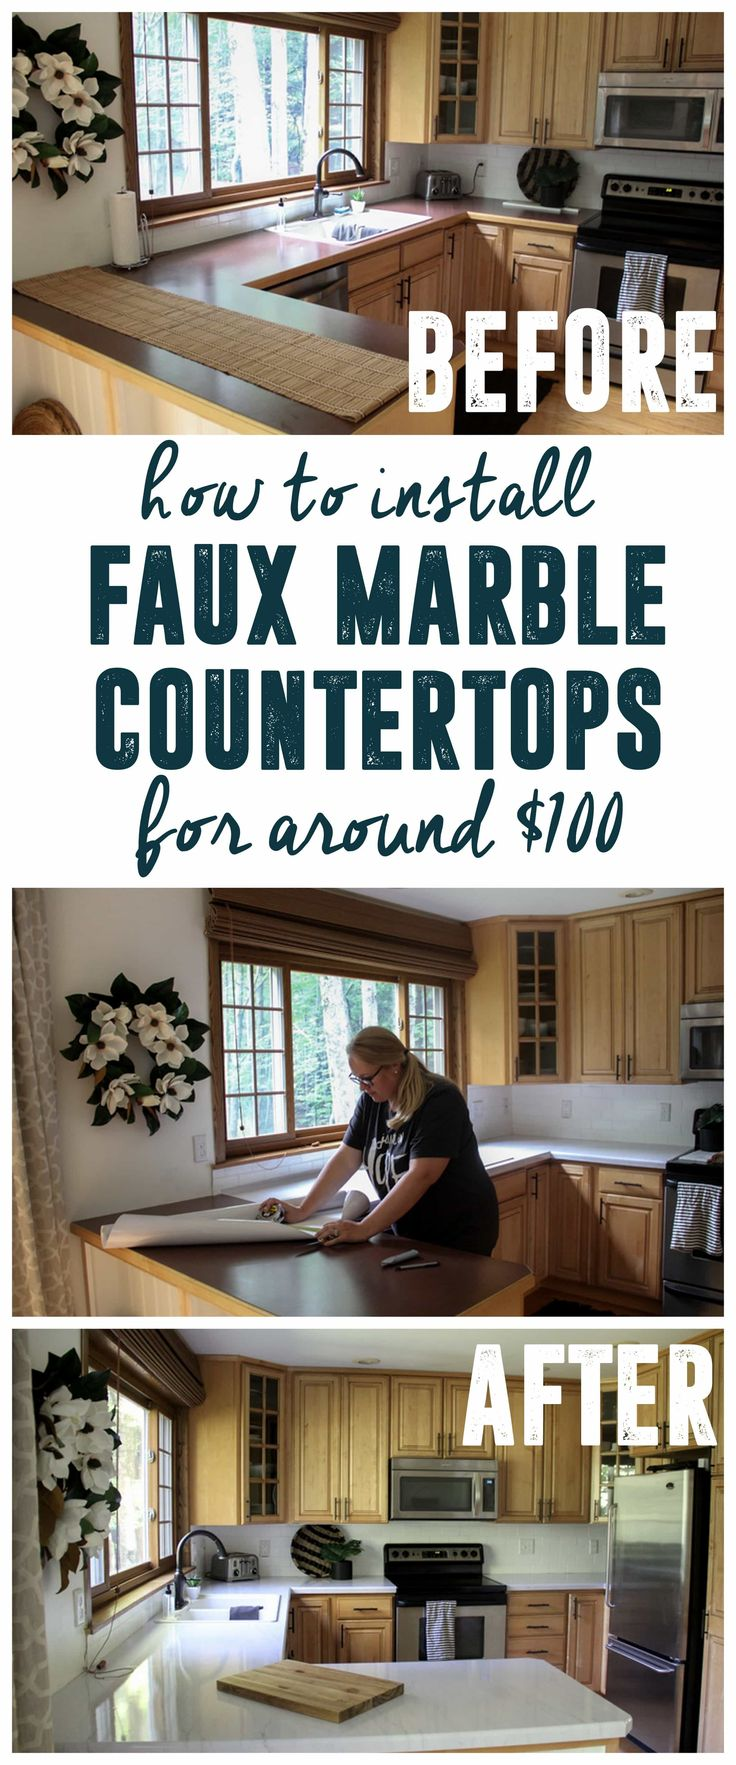 Best place to buy contact paper - Diy Faux Marble Countertops